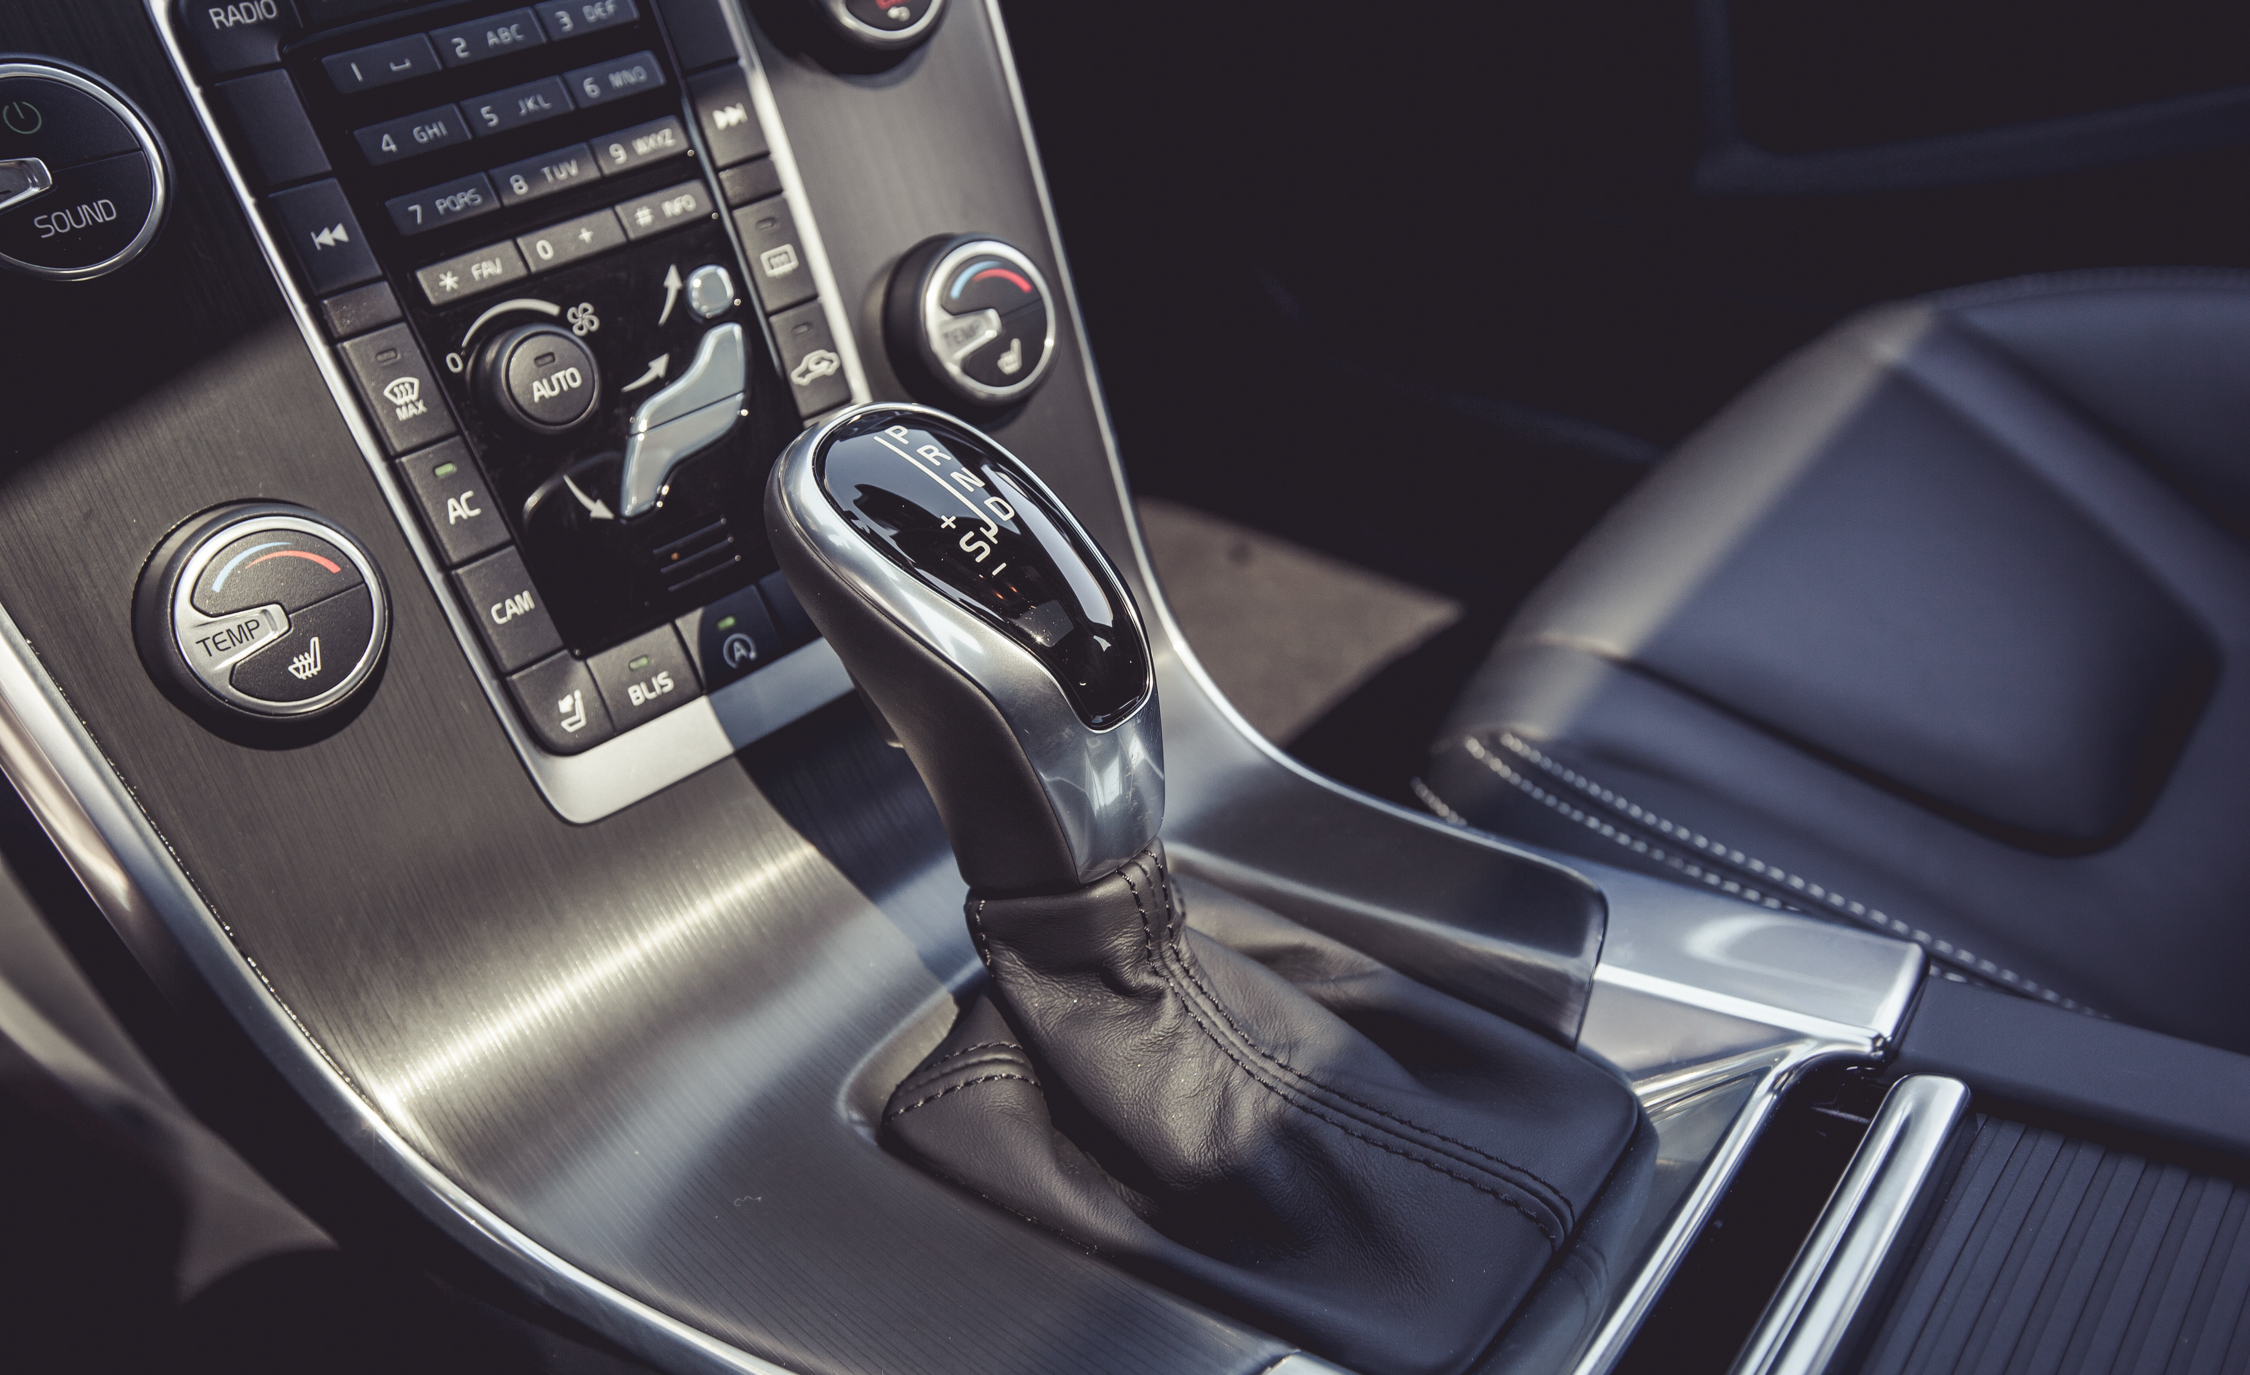 2015 Volvo V60 Interior Gear Shift Knob